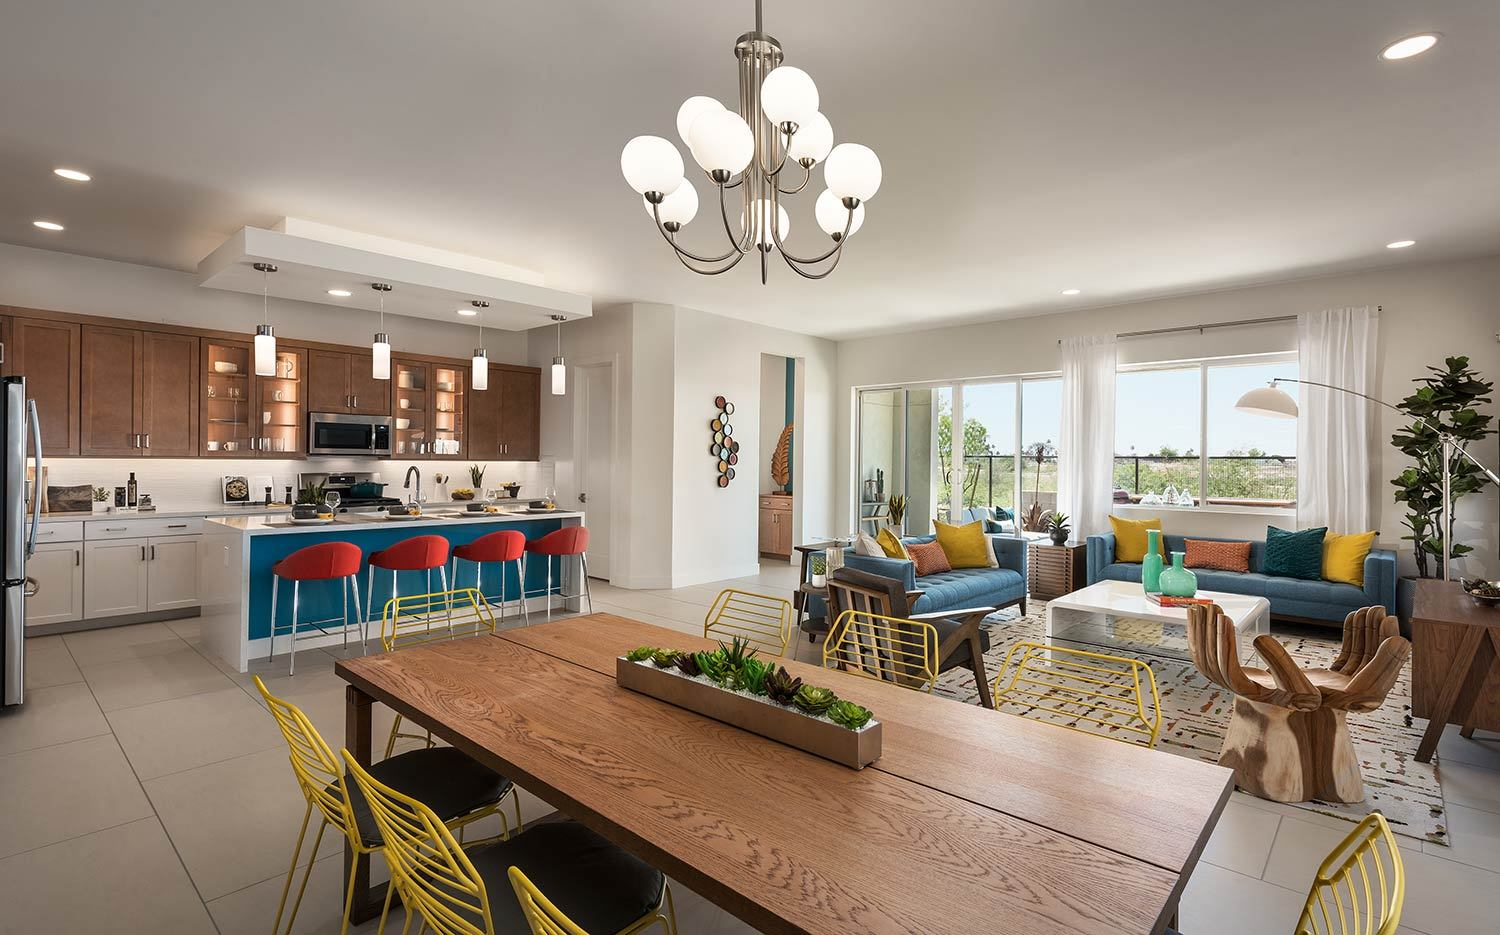 Living Area featured in the Loma Plan 2 By Maracay Homes in Phoenix-Mesa, AZ